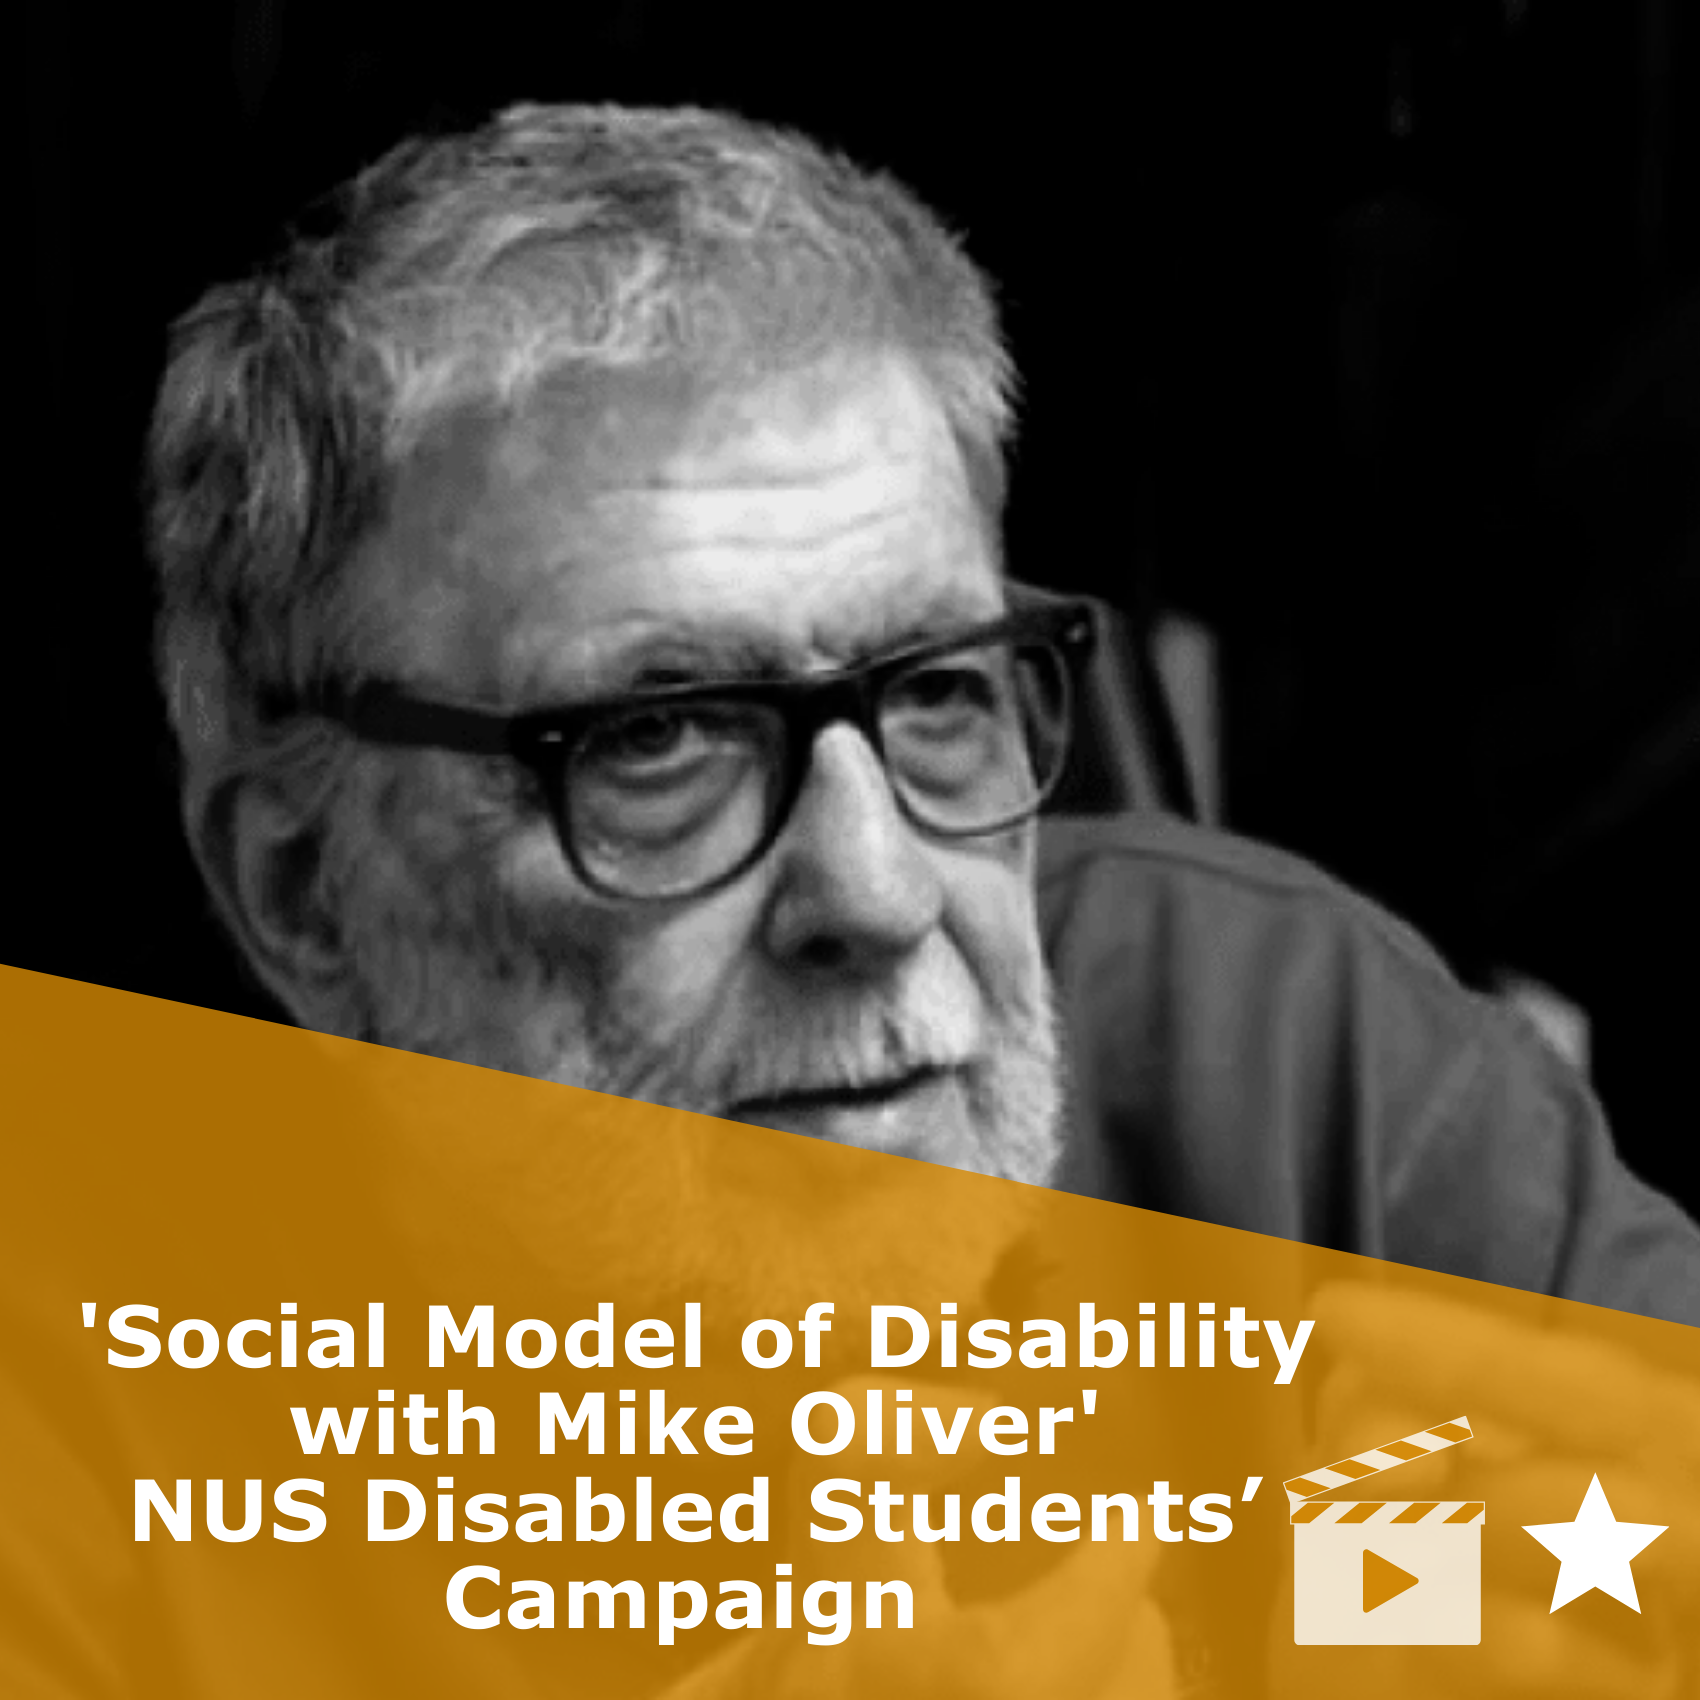 Title Social Model of Disability with Mike Oliver | NUS Disabled Students' Campaign'. It is a video rated 1 star.